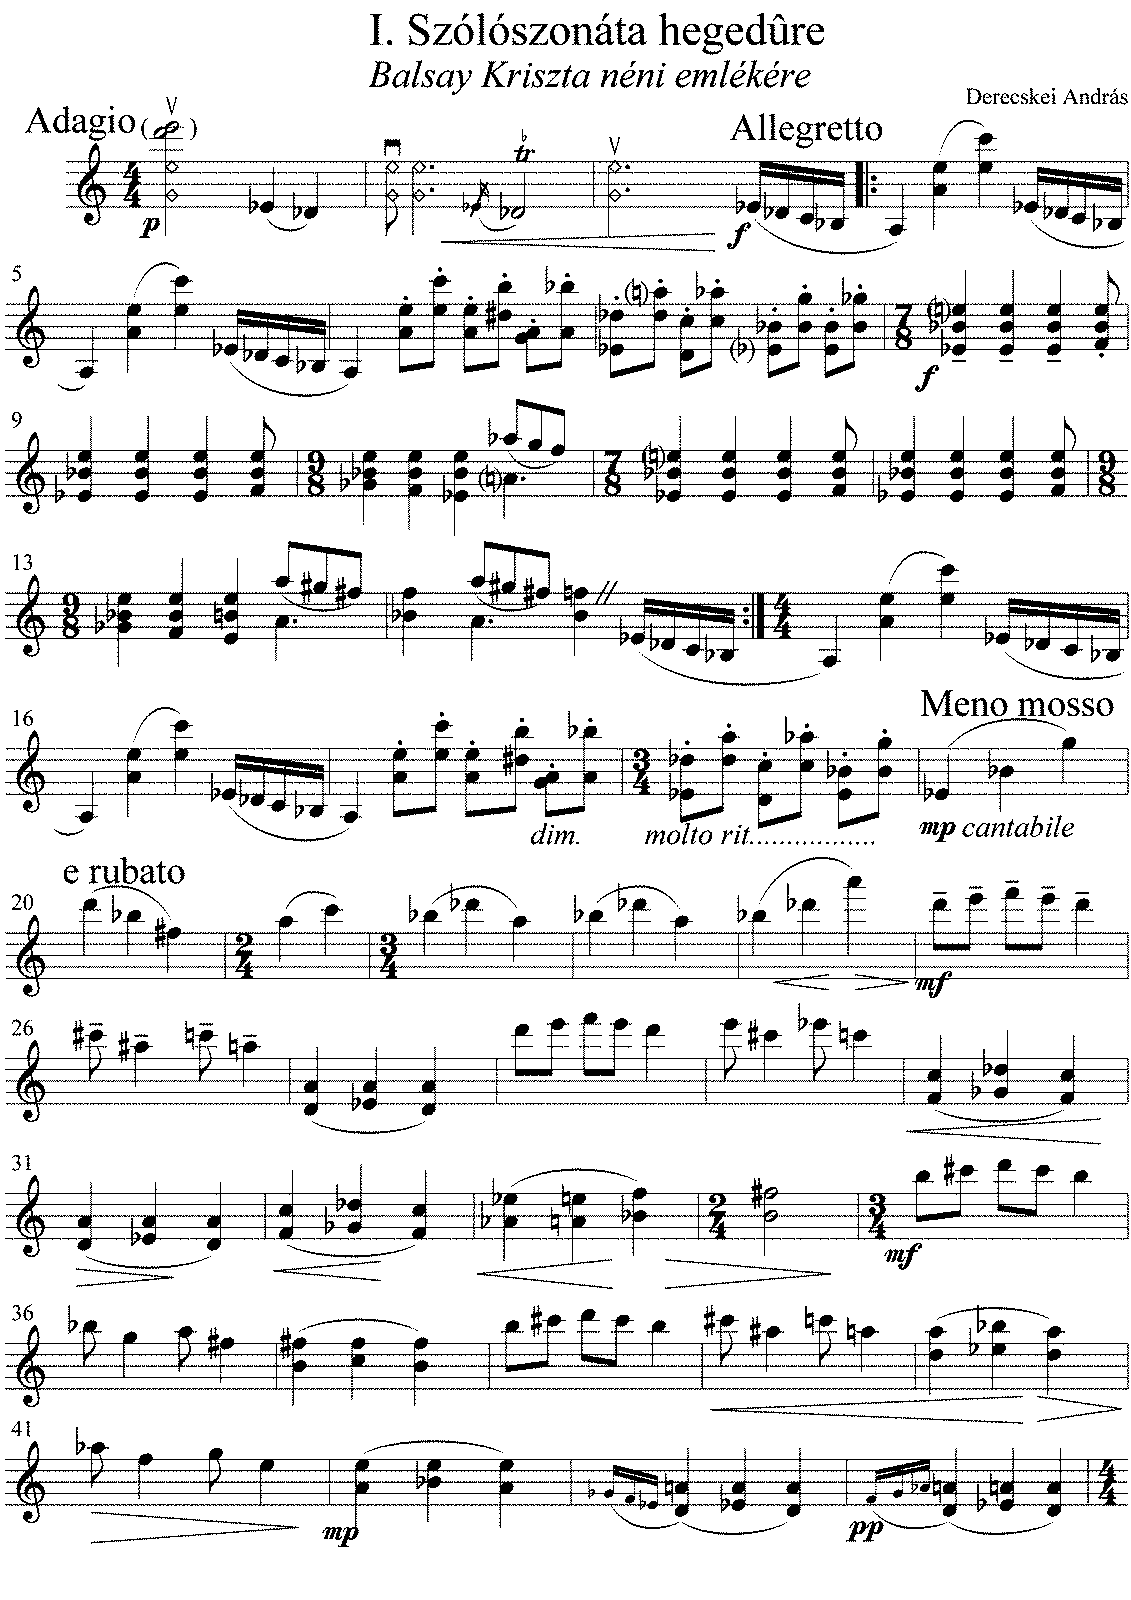 PMLP67533-Derecskei - Sonata for Solo Violin No 1.pdf